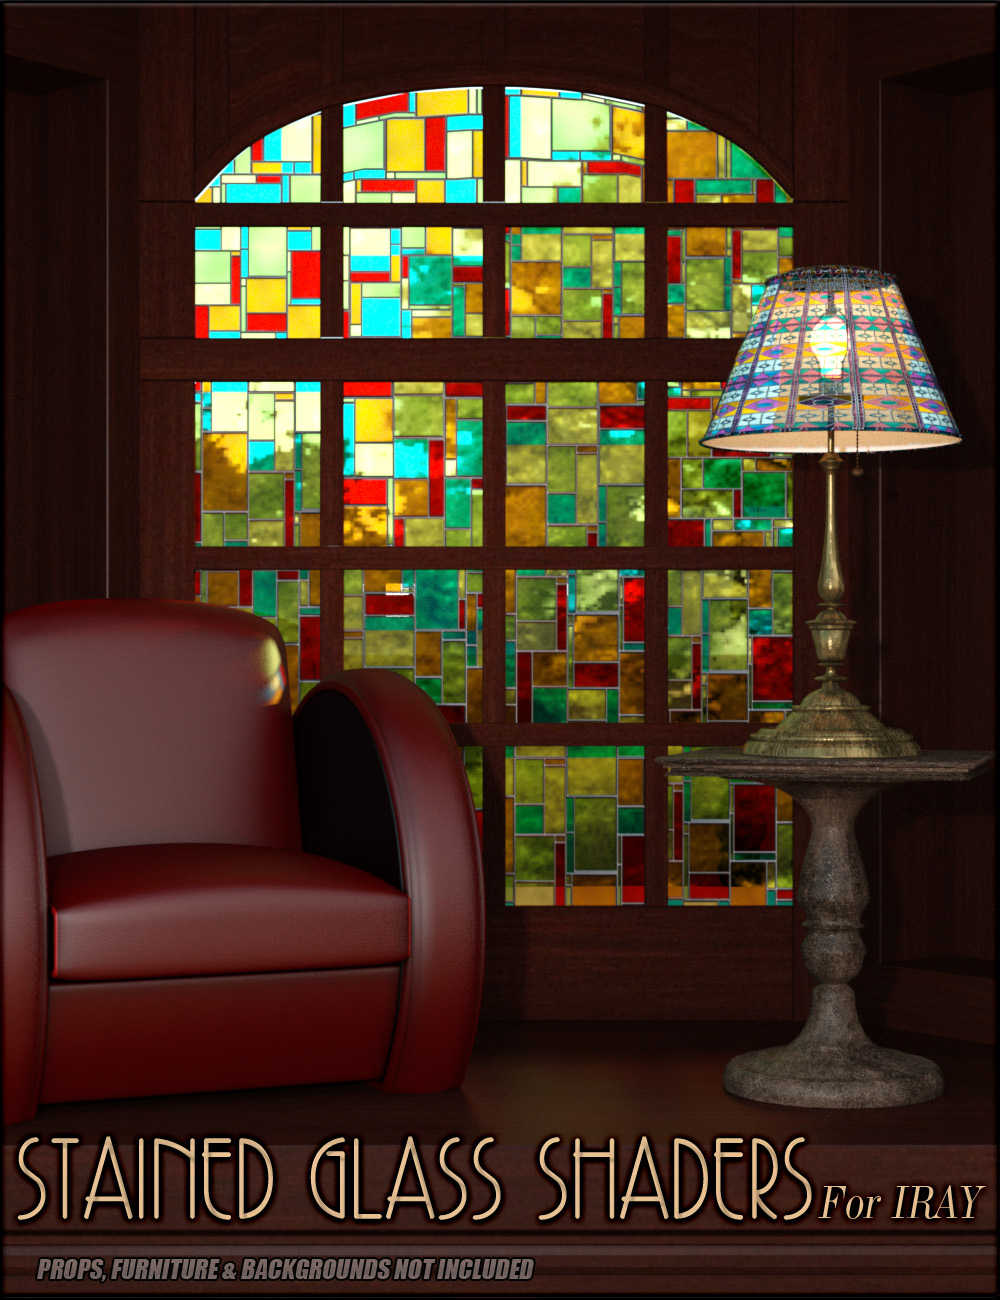 Stained Glass Iray Shaders by: vyktohria, 3D Models by Daz 3D